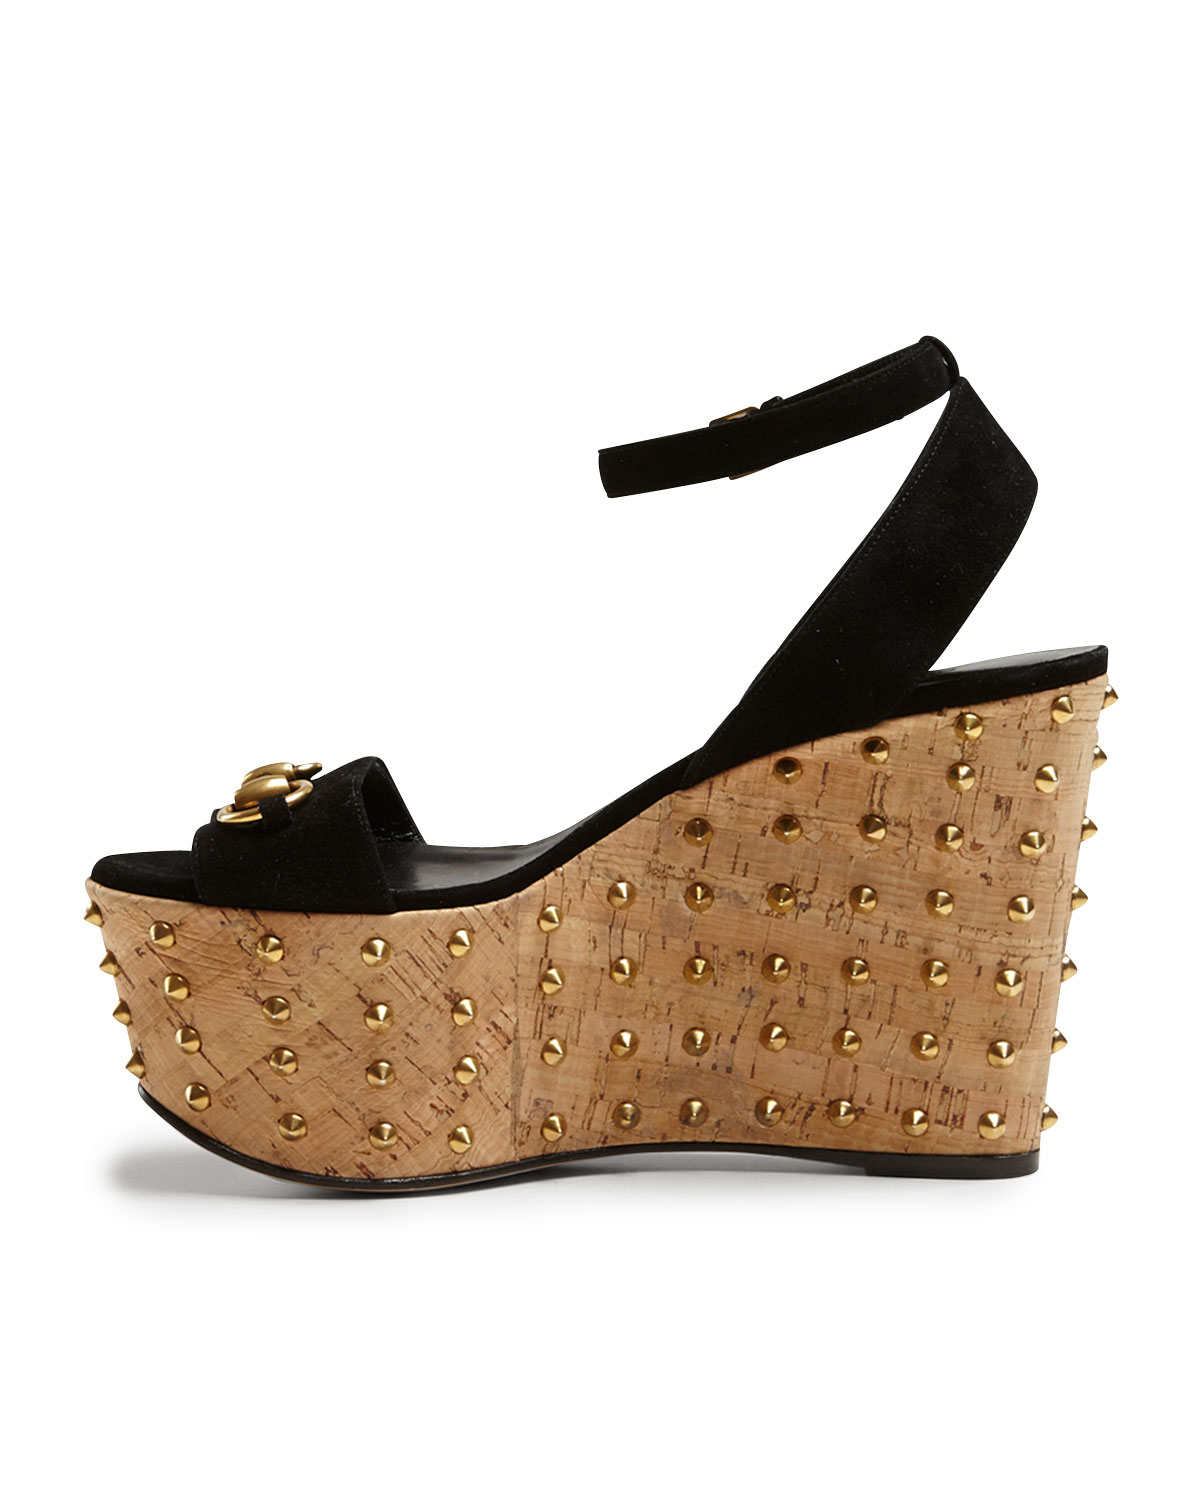 81a14dc27f3 Lyst - Gucci Lilianne Studded Suede Wedge Sandal in Black